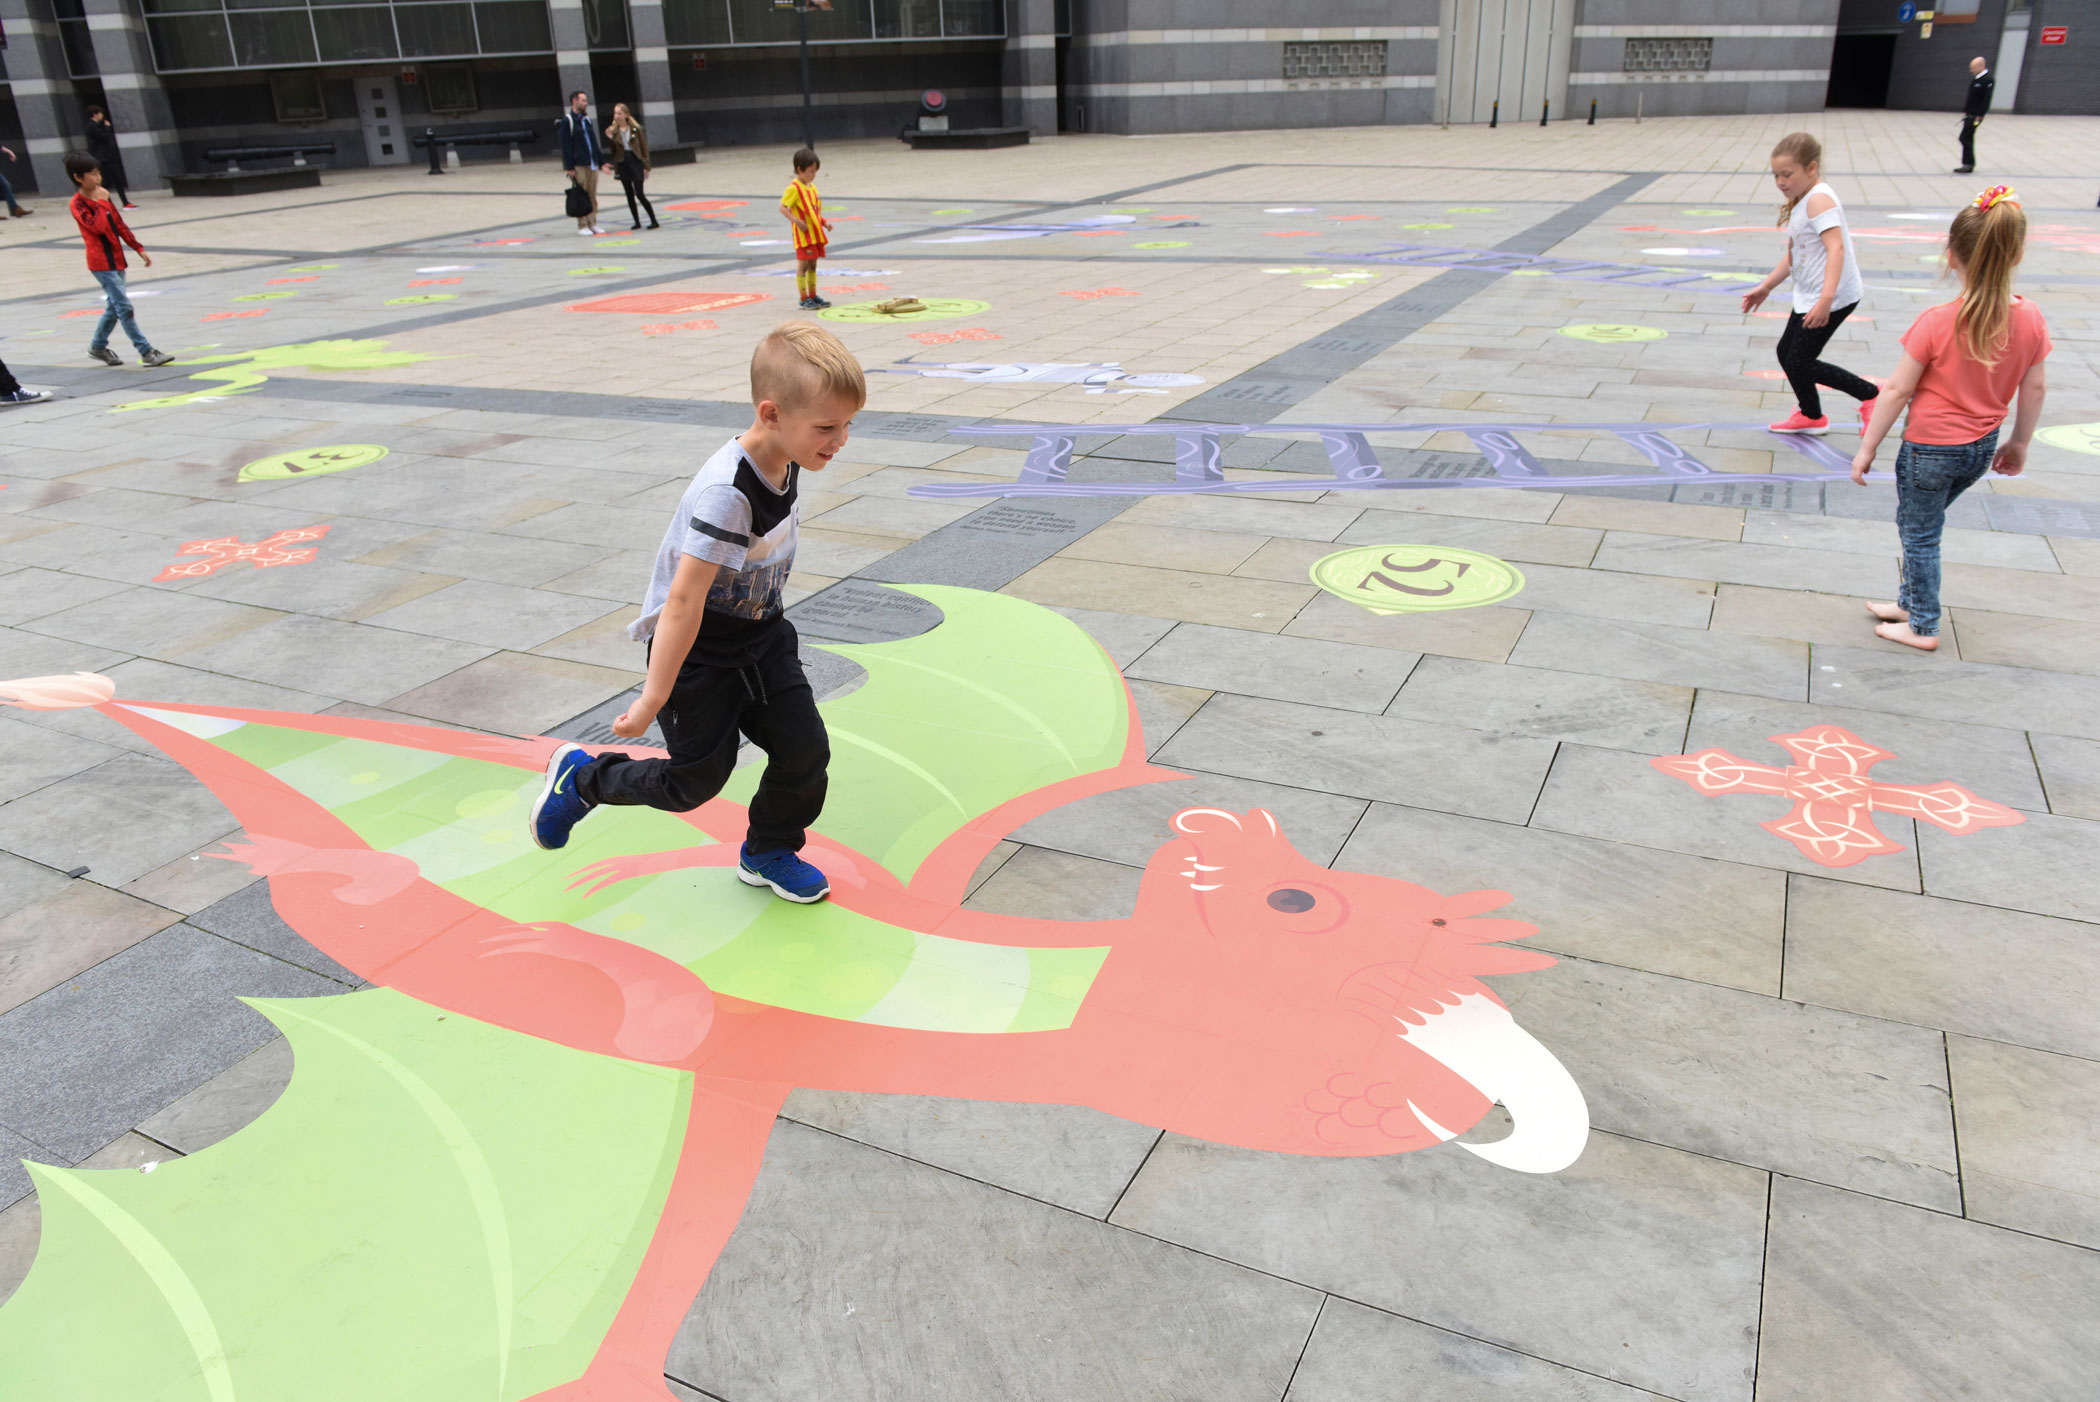 Dragons & Ladders at the Royal Armouries Museum:  A fun and educational enlivenment activation that dramatically increased dwell time and drove footfall.Find out more...